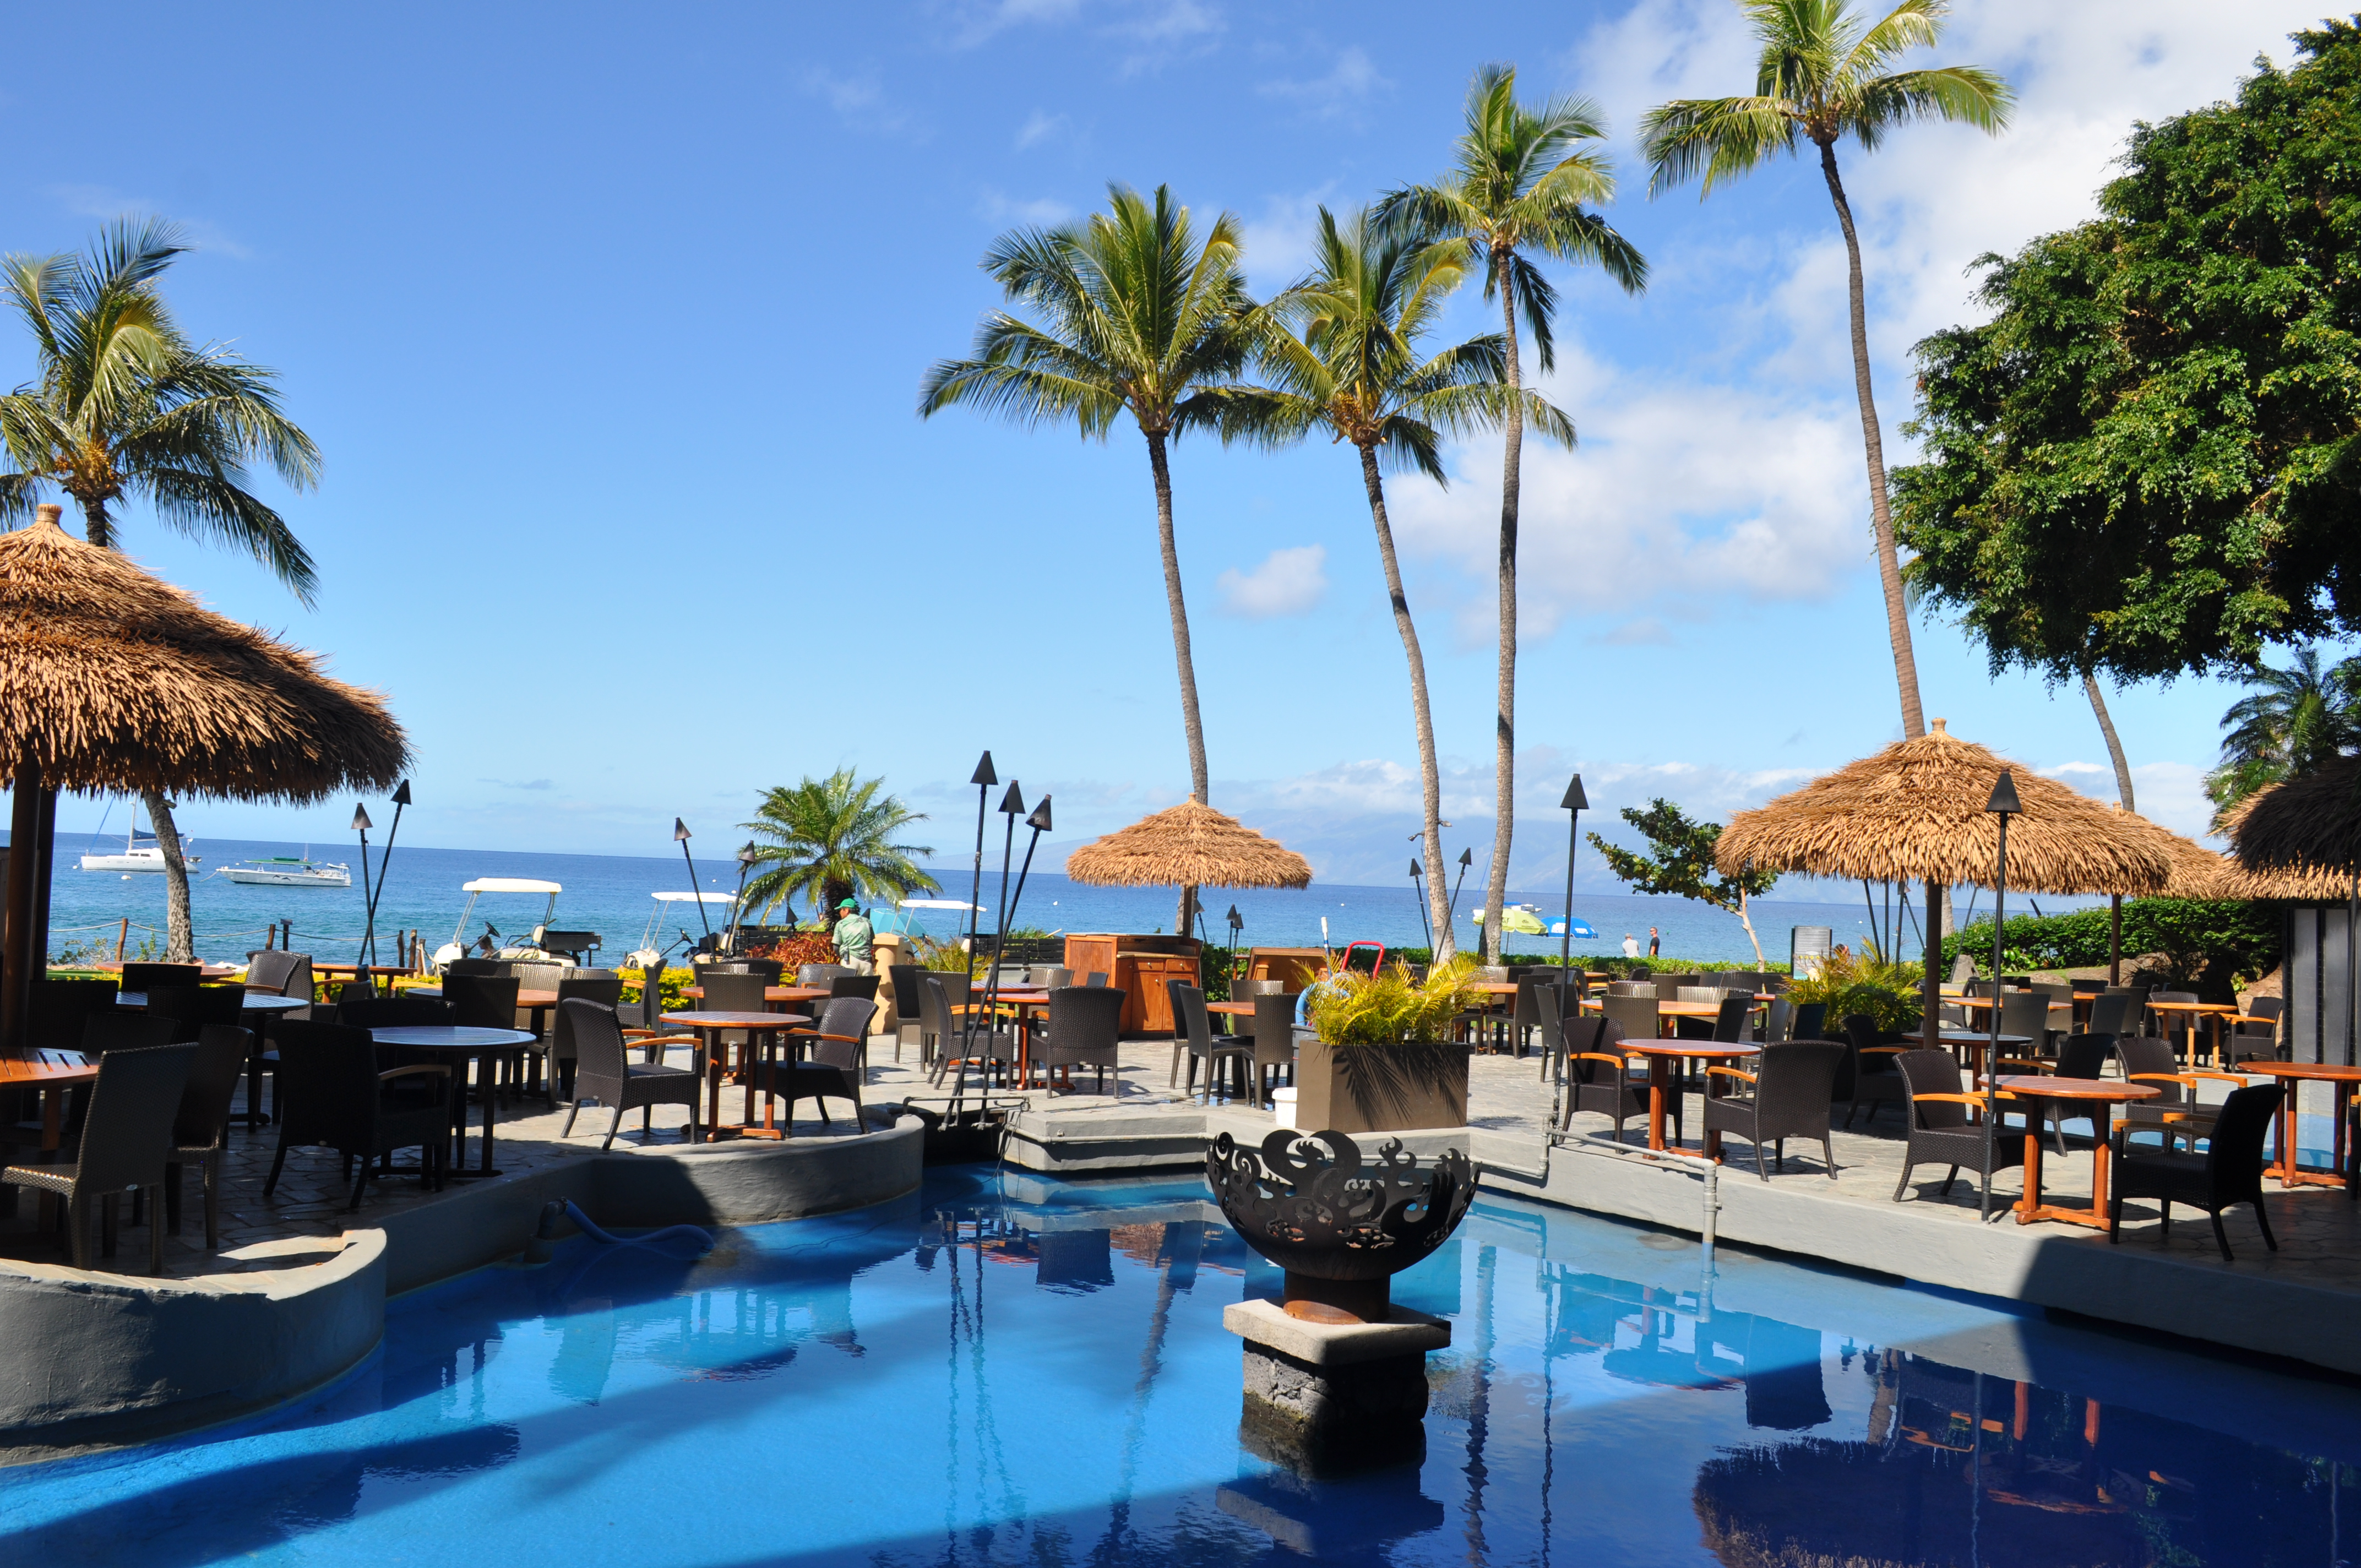 Westin Maui Resort & Spa. Photo by www.desiglobetrotter.com